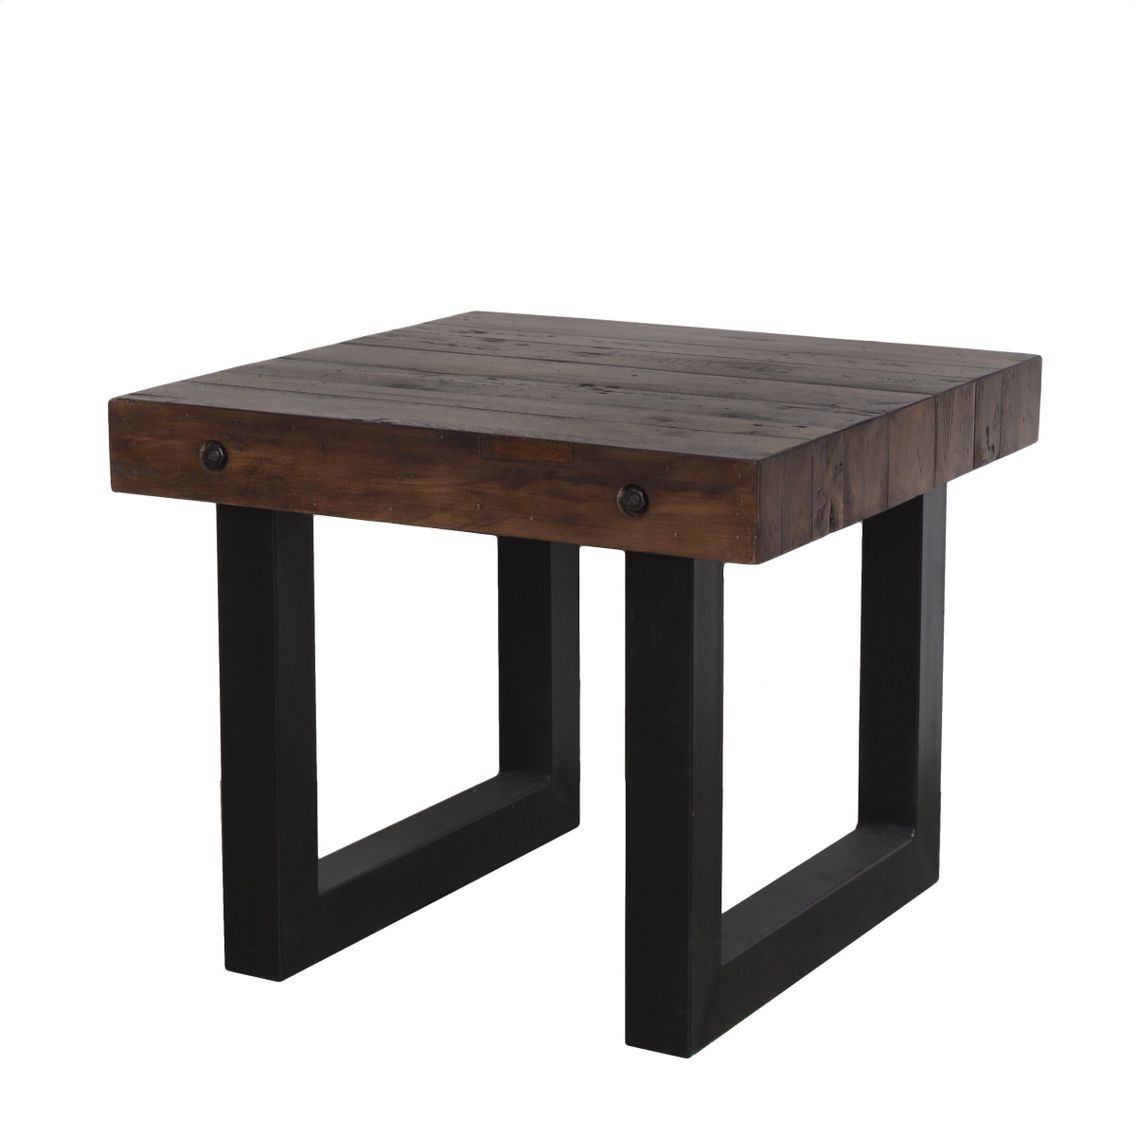 End table from the new york collection made from reclaimed pine end table from the new york collection made from reclaimed pine with a coffee bean stain geotapseo Image collections